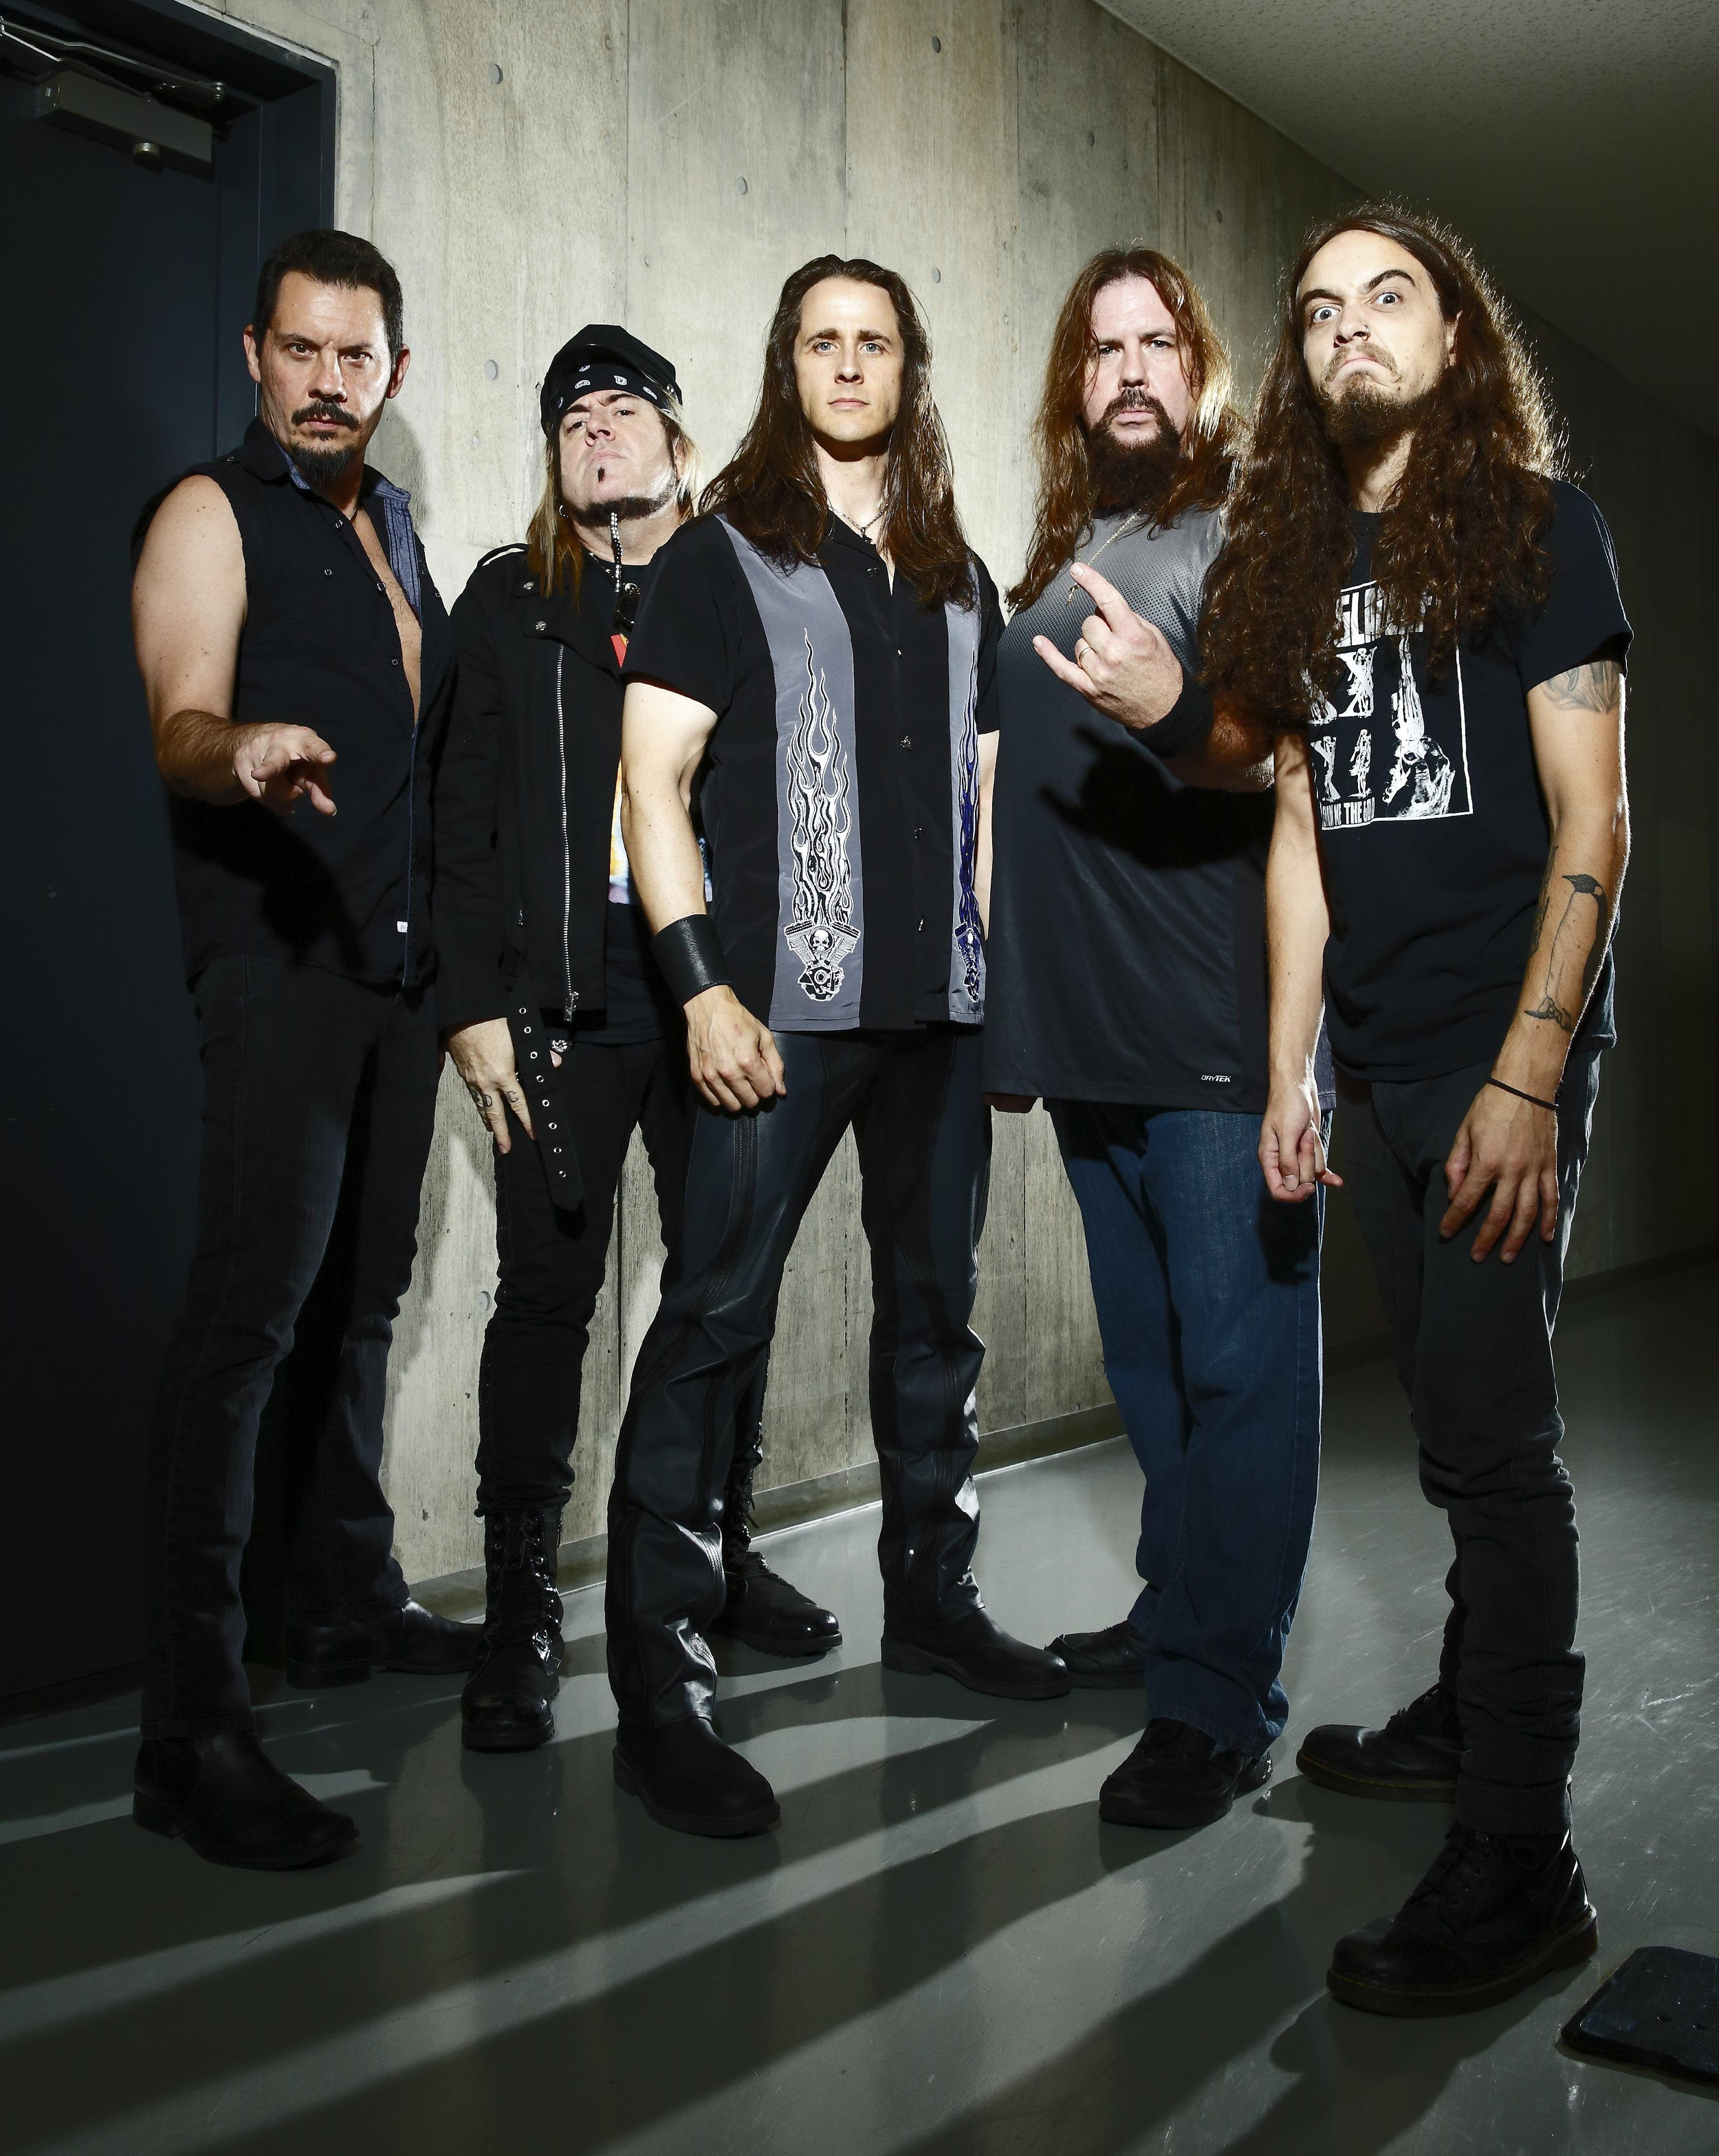 Order  your copy of Armor Of Light here:  http://nuclearblast.com/riotv-armoroflight